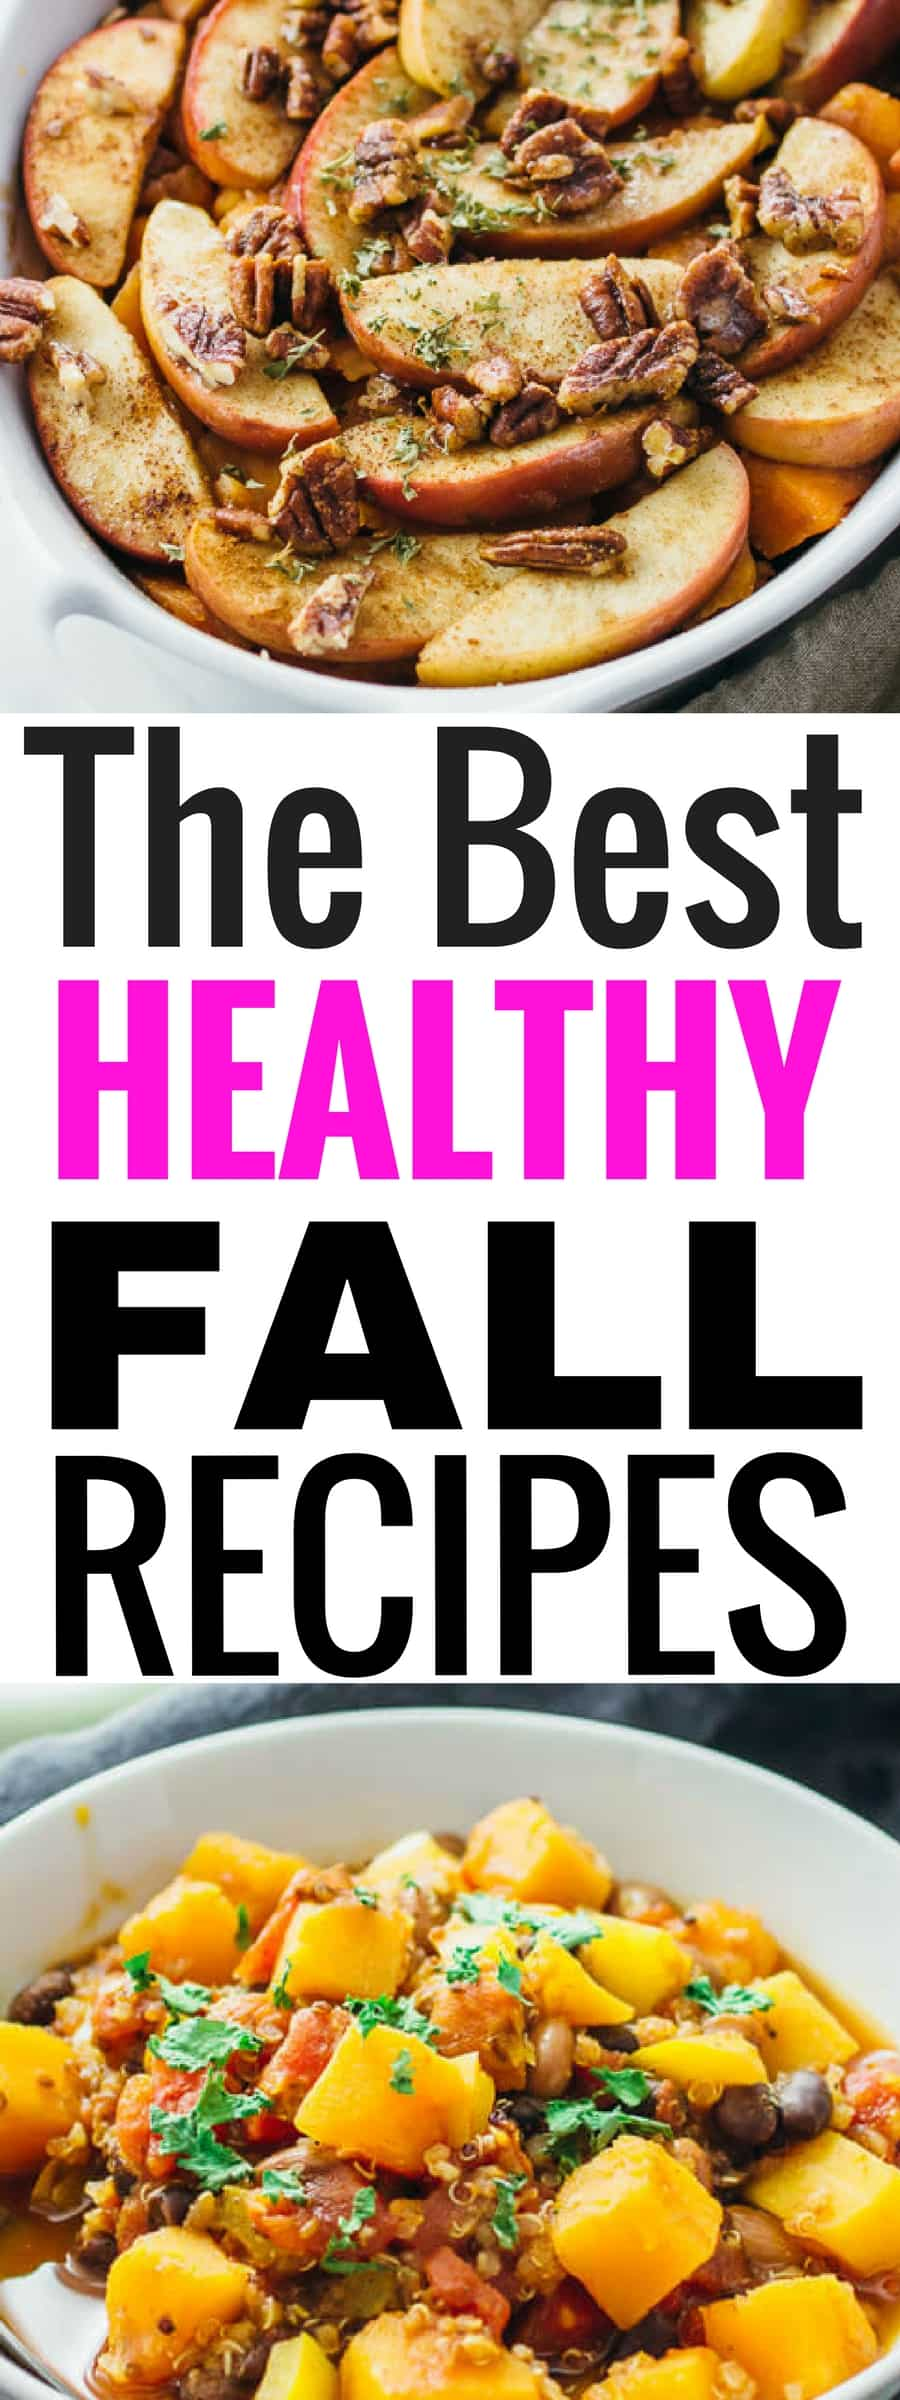 These healthy fall recipes taste amazing and will help you stay on track with all your health goals